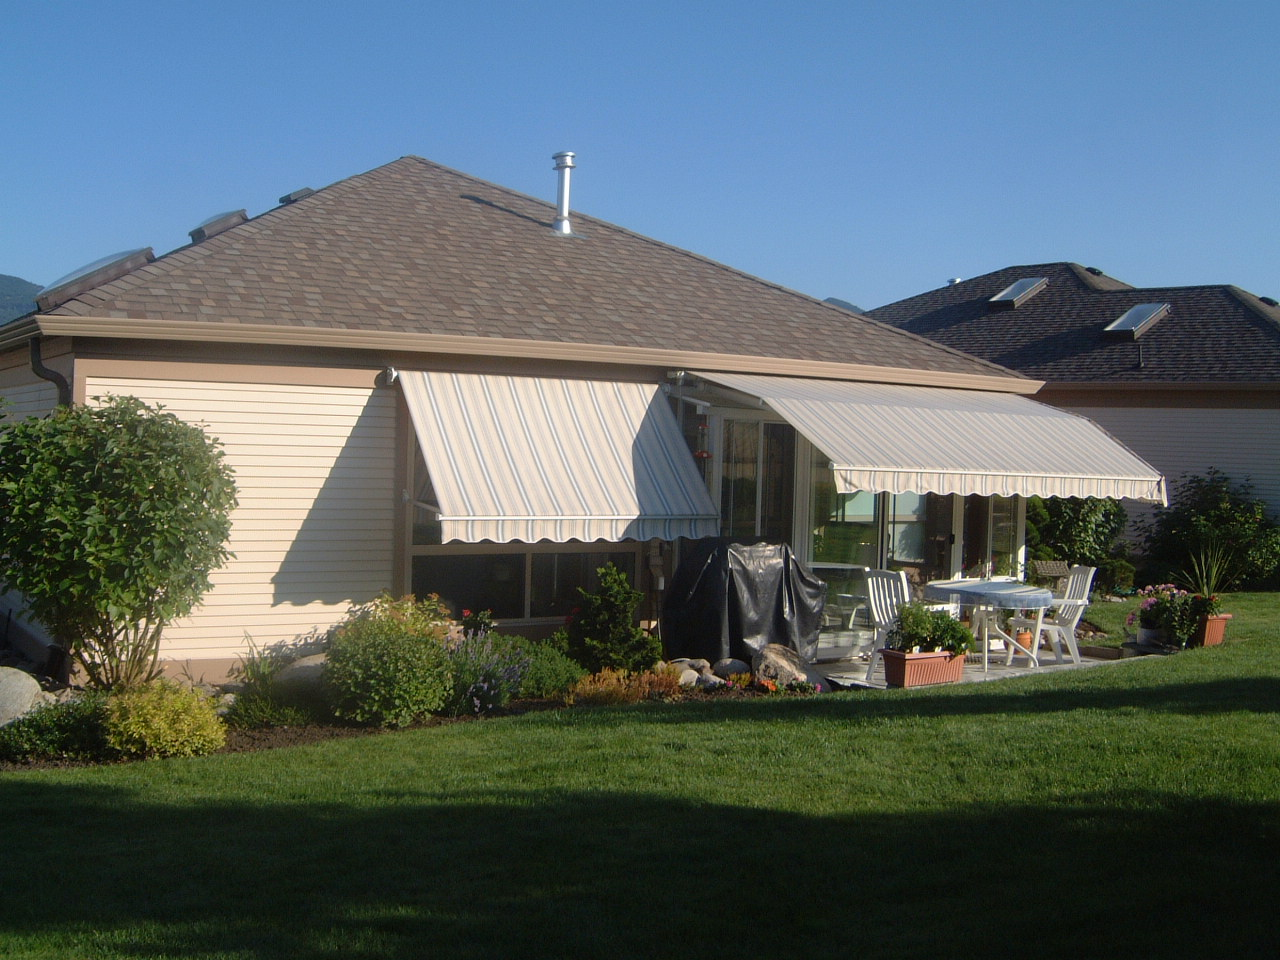 patio-deck-awning-4